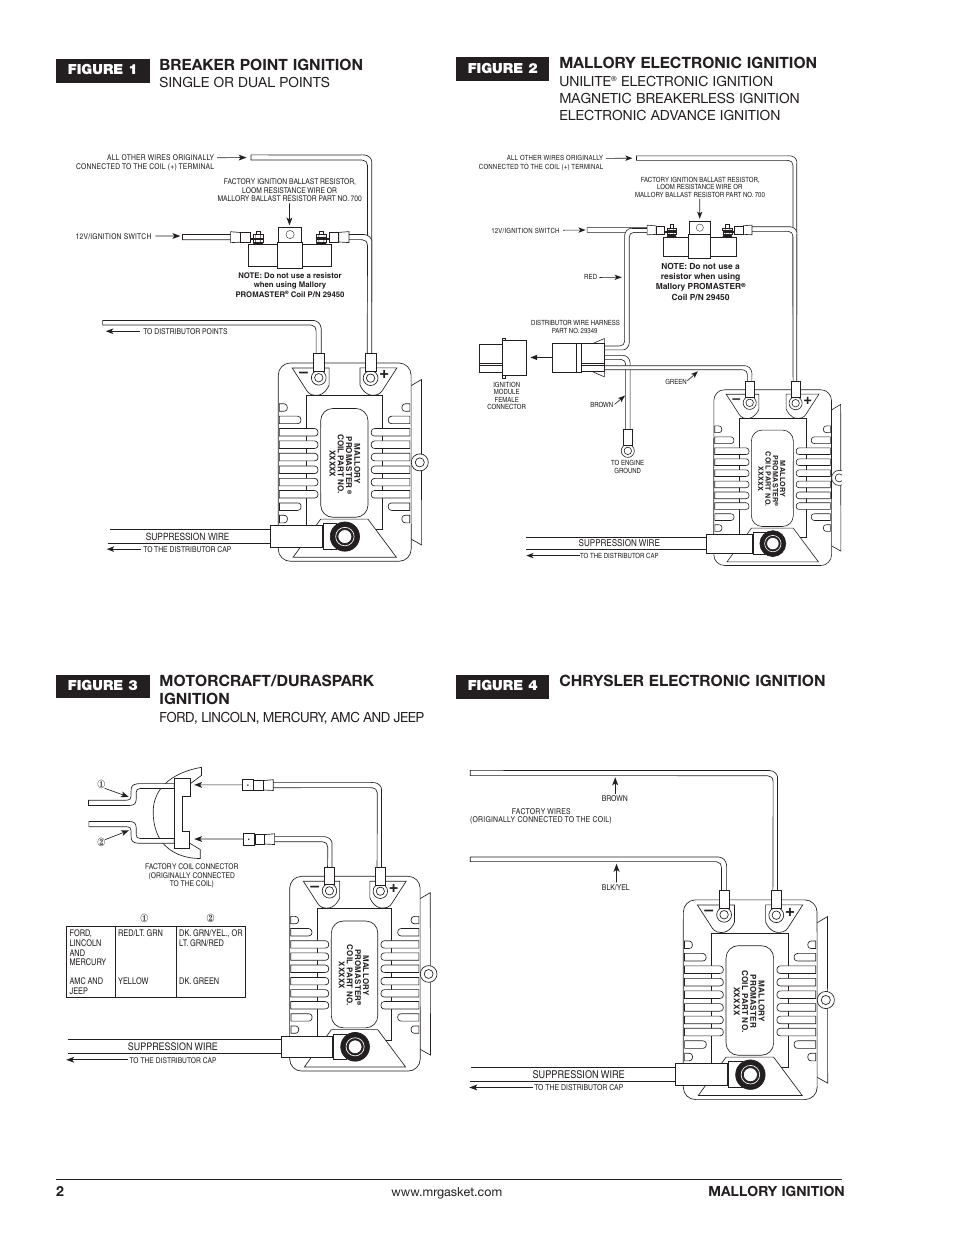 hight resolution of mallory coil 29440 wiring diagram wiring diagram mallory 29440 wiring diagram schema diagram database mix mallory